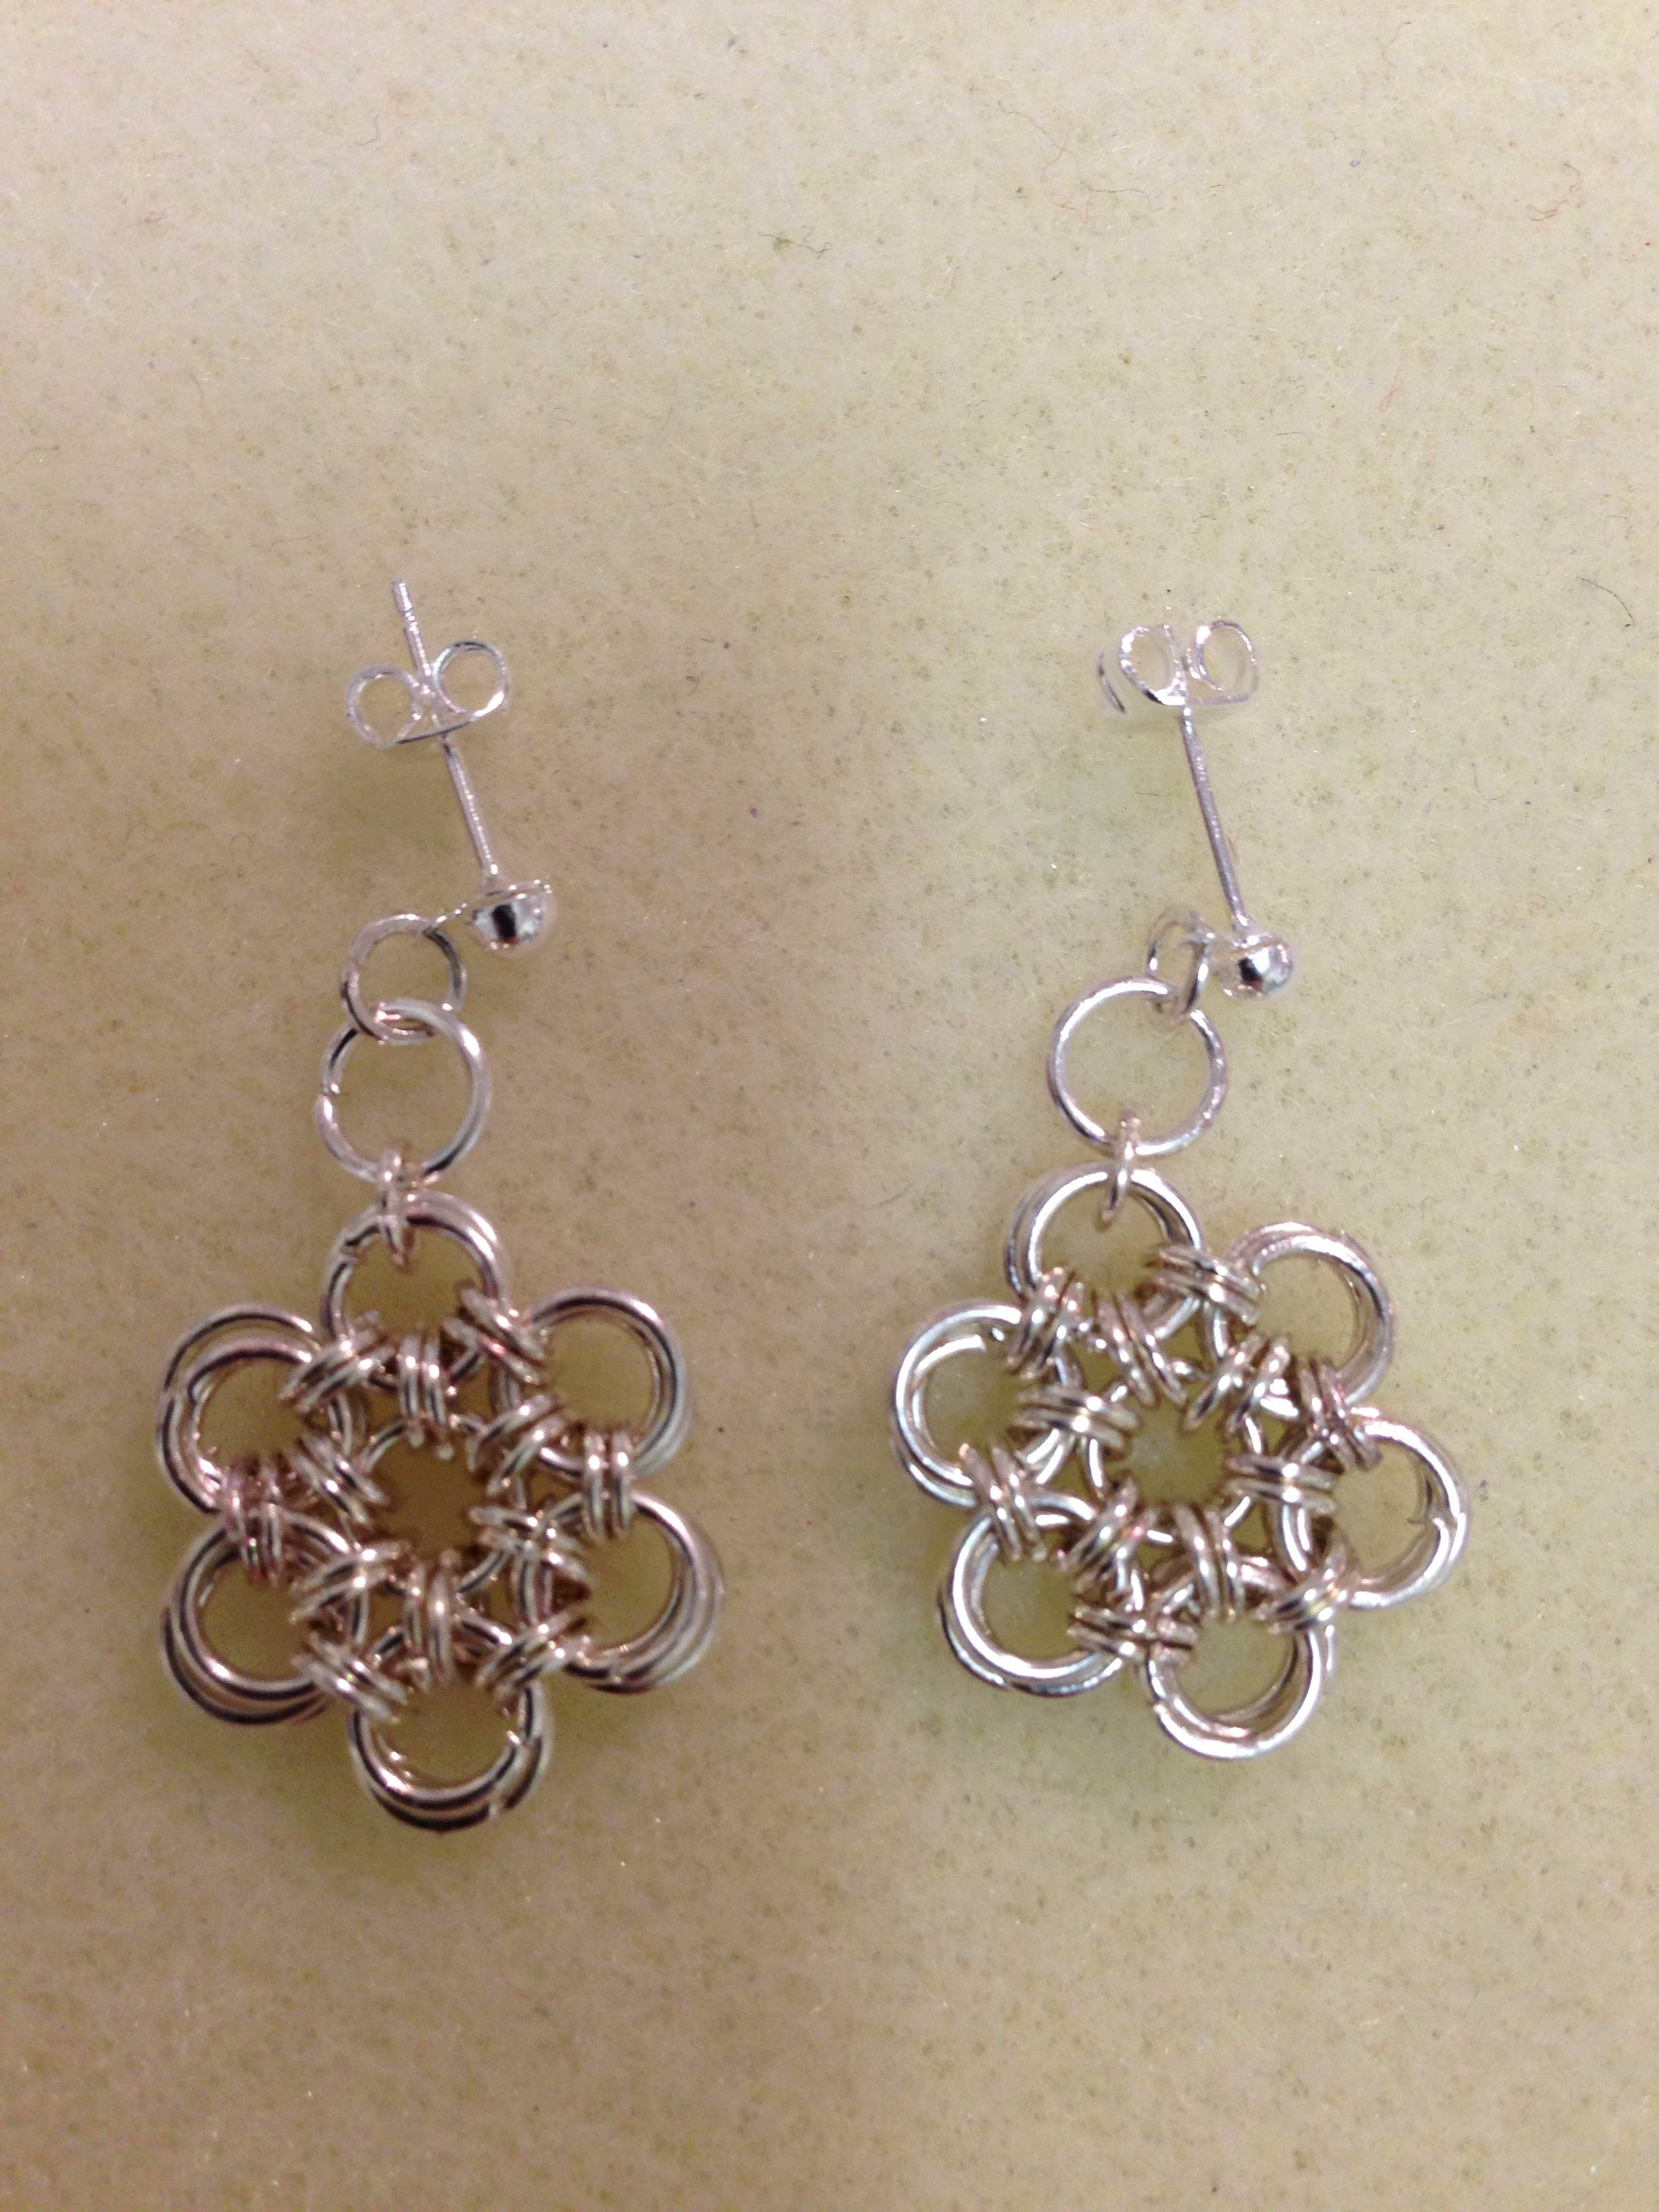 Japanese 12-2 chain mail earrings I made using jump rings